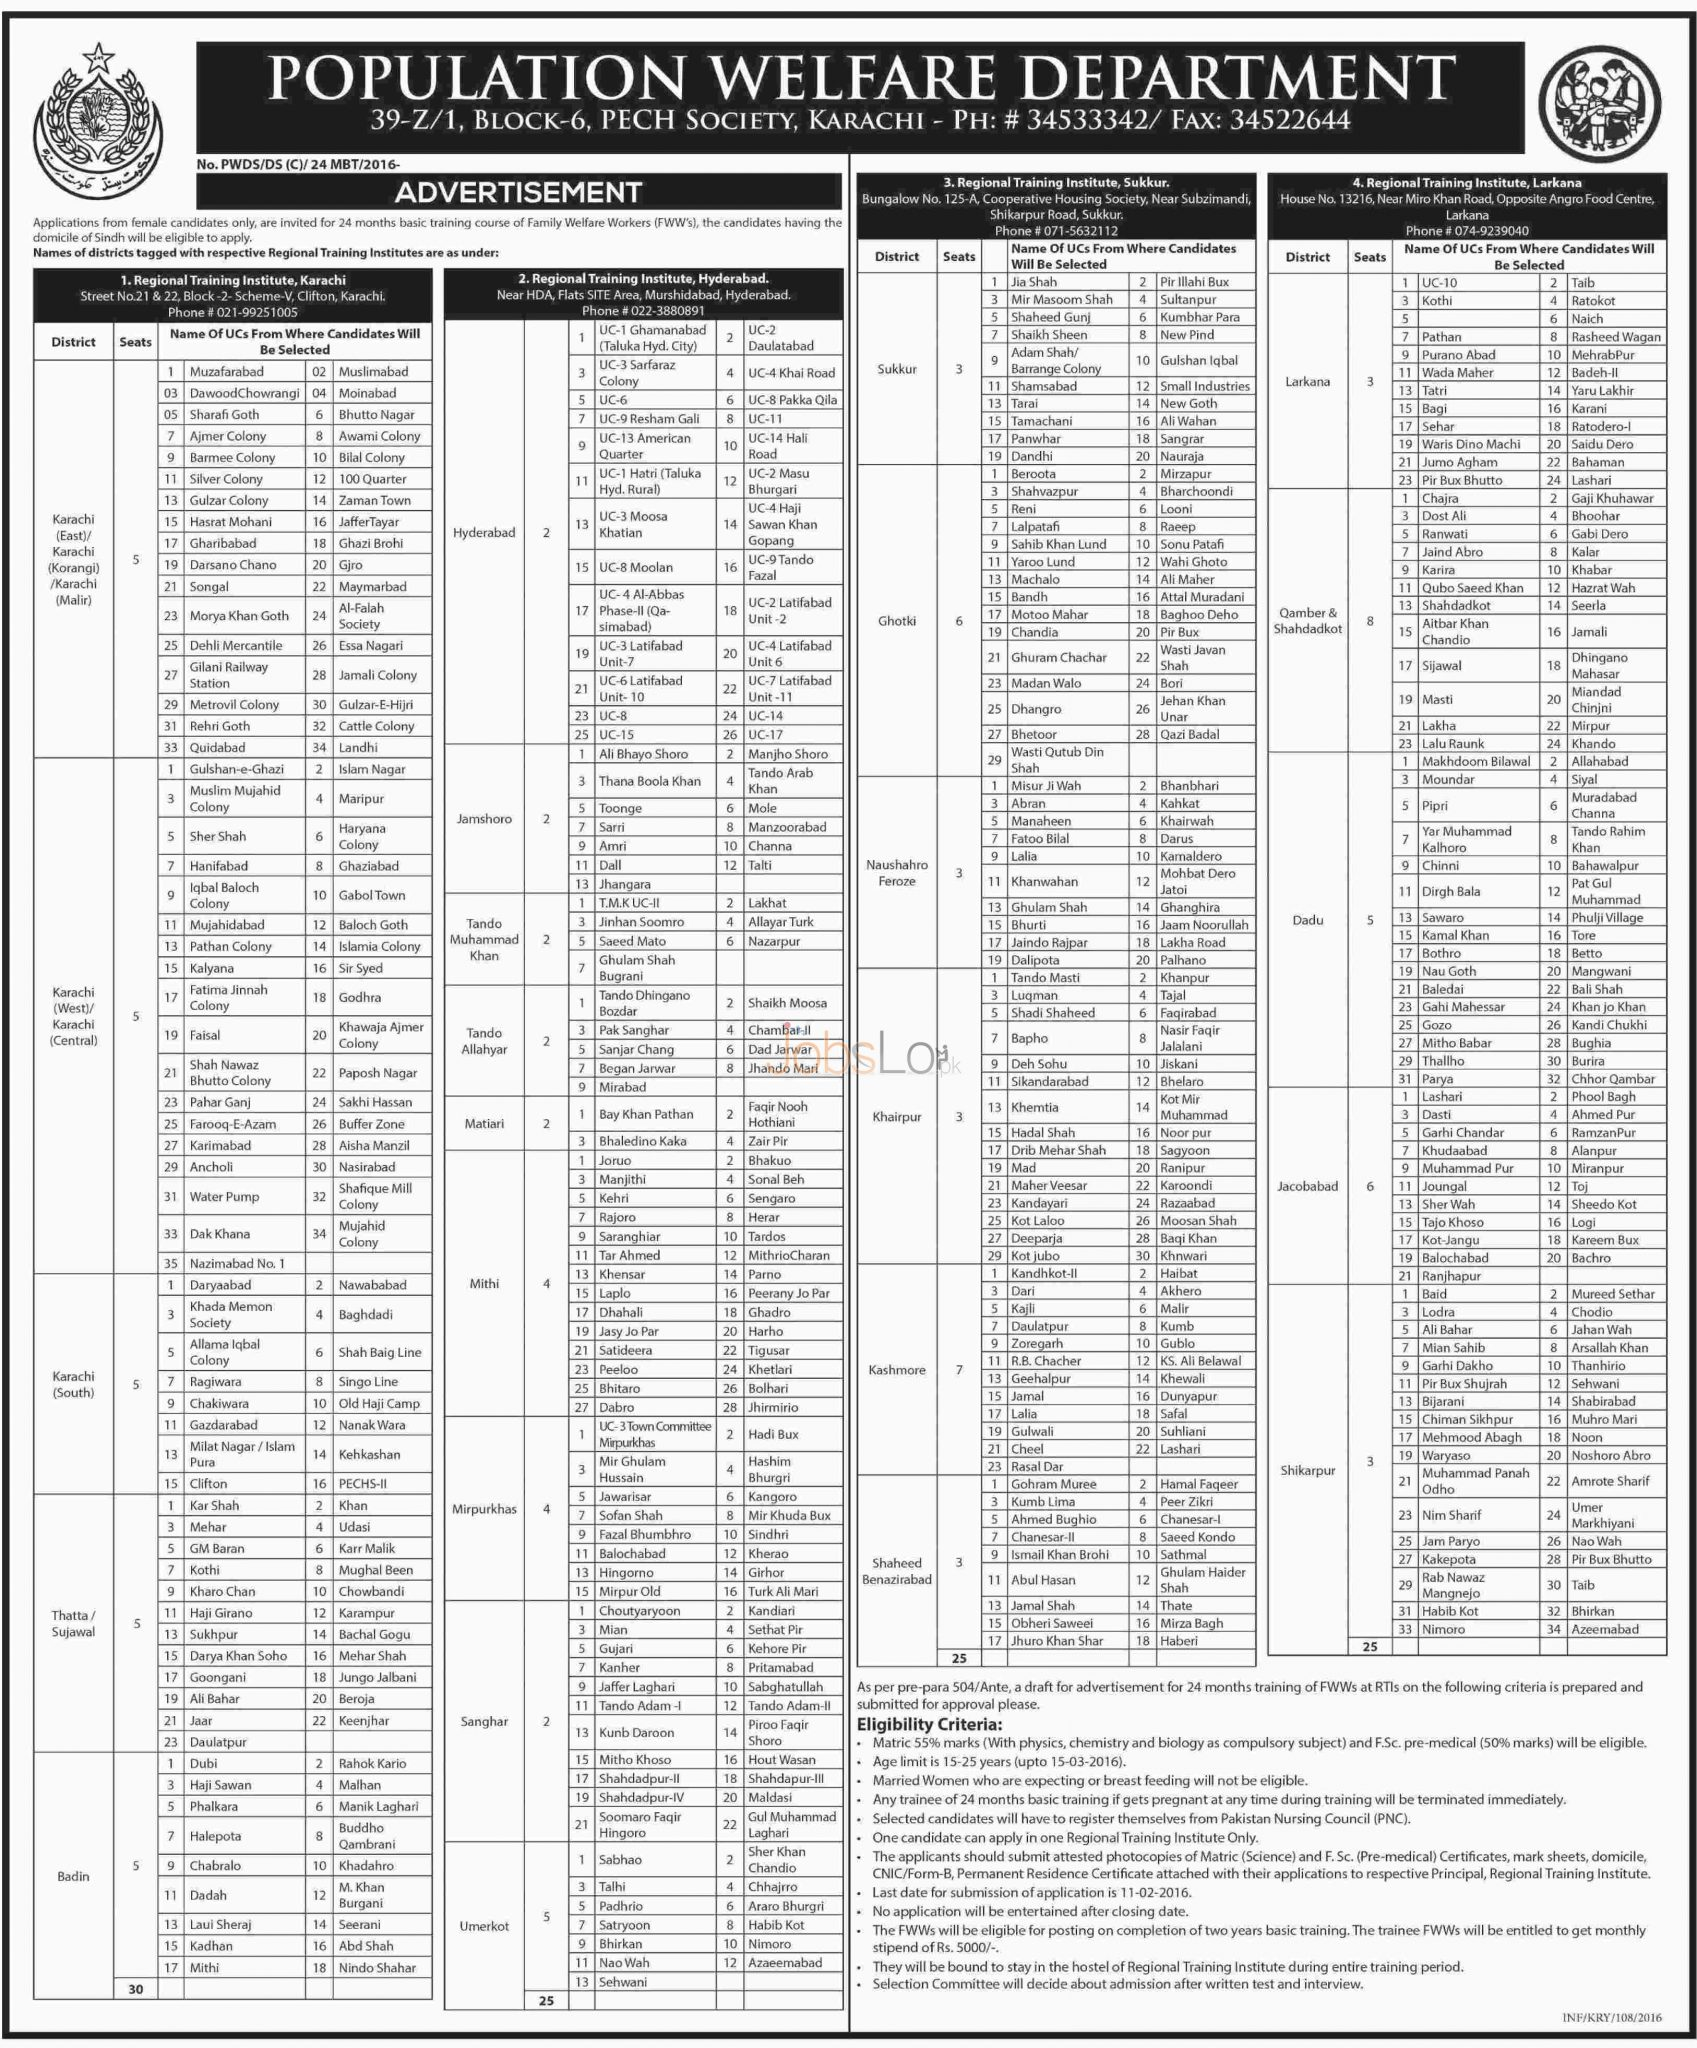 Recruitment Offers in Population Welfare Department 4th February 2016 Sukkur, Karachi, Hyderasbad and Larkana